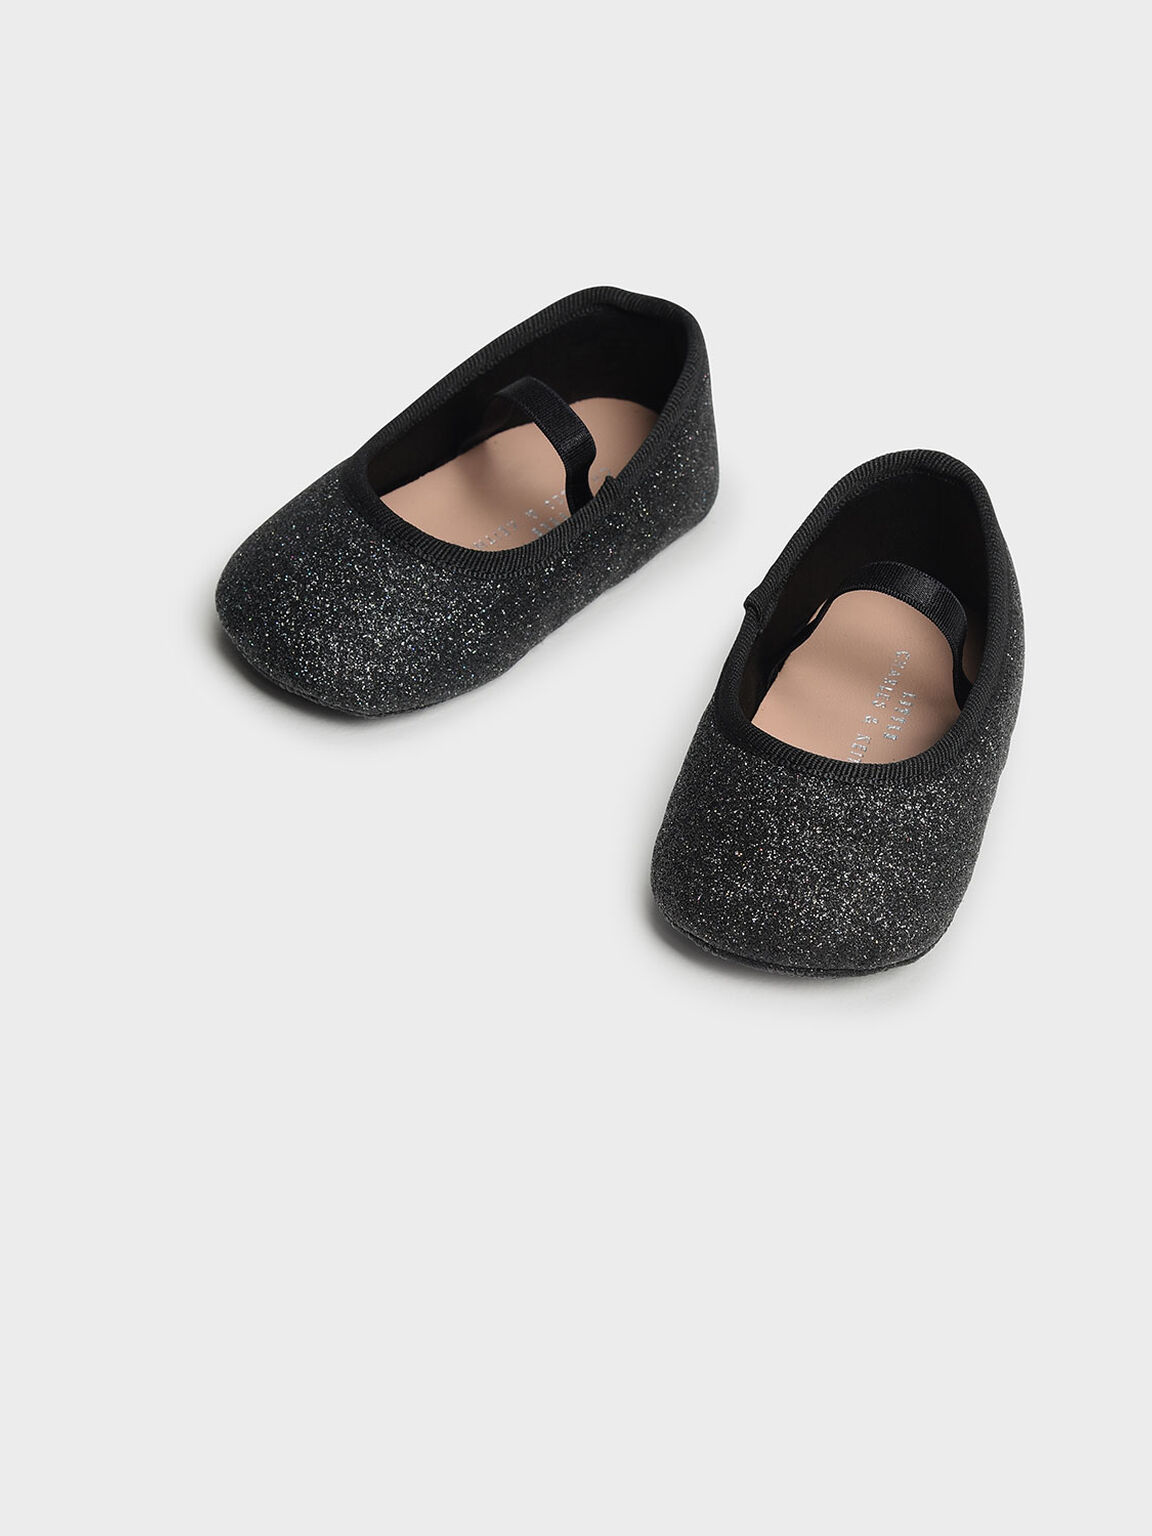 Kids Glittery Mary Janes, Black, hi-res